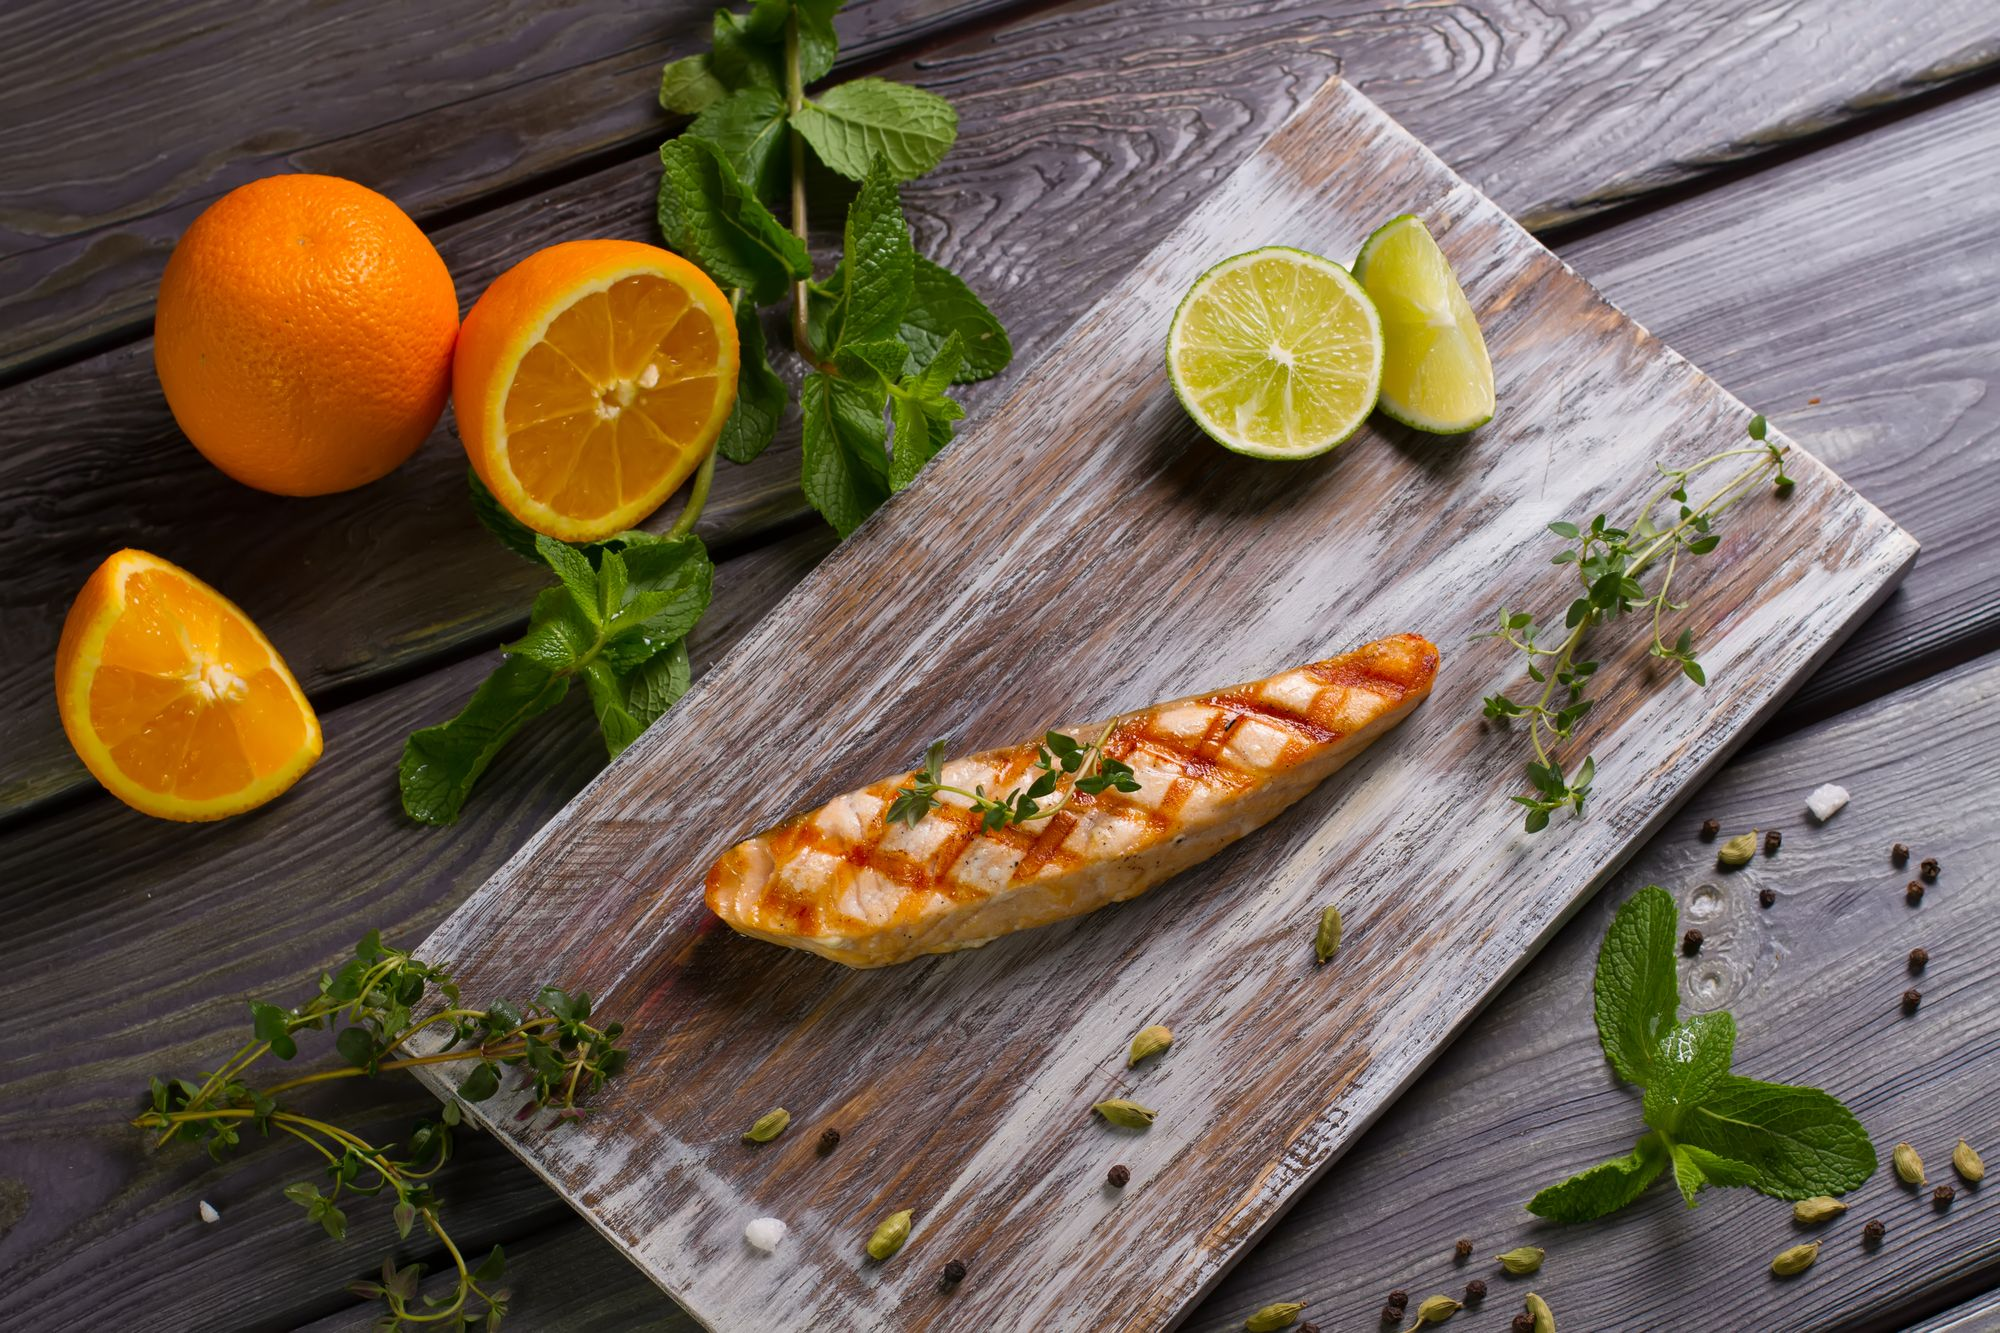 Crispy Herb-dressed Salmon